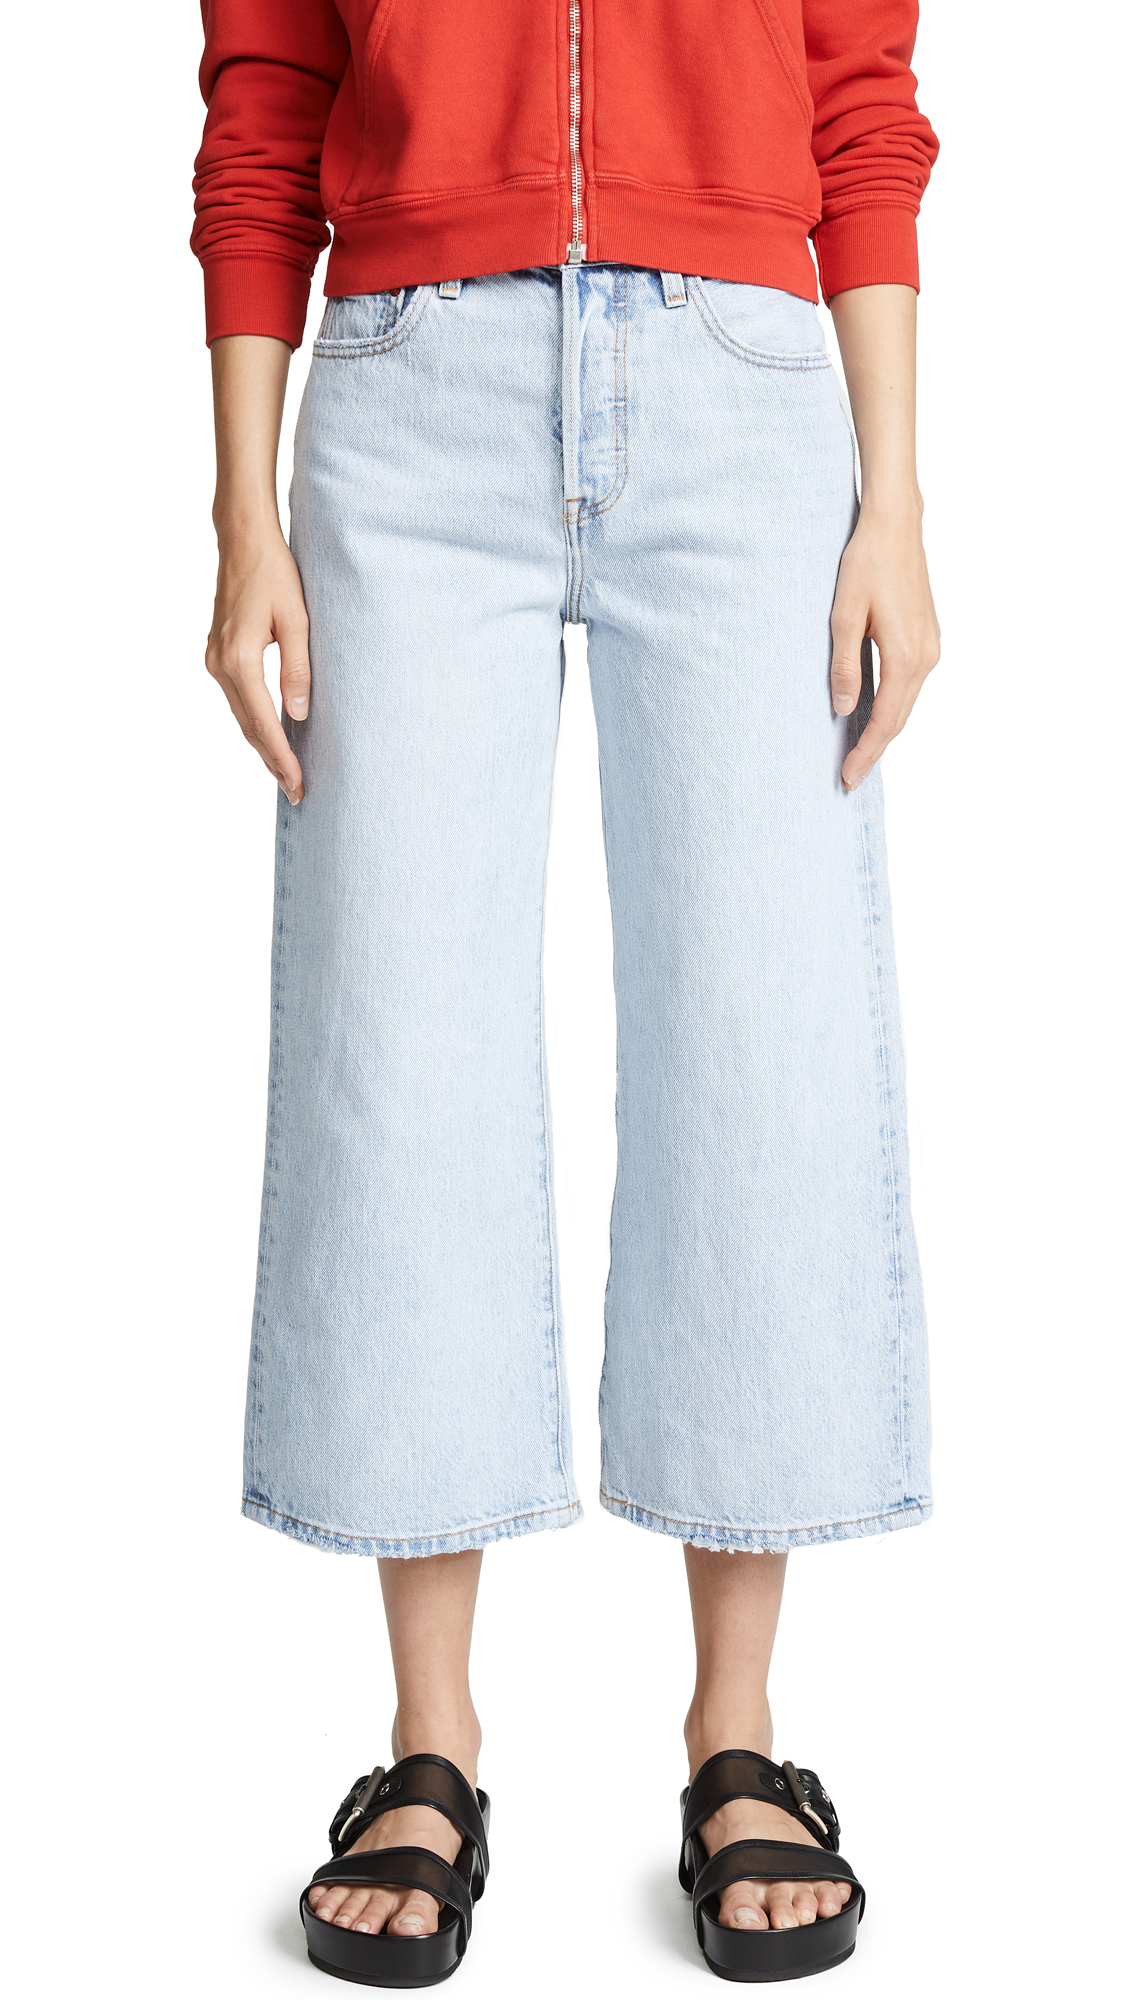 Levi's High Water Wide Leg Jeans In Throwing Shade